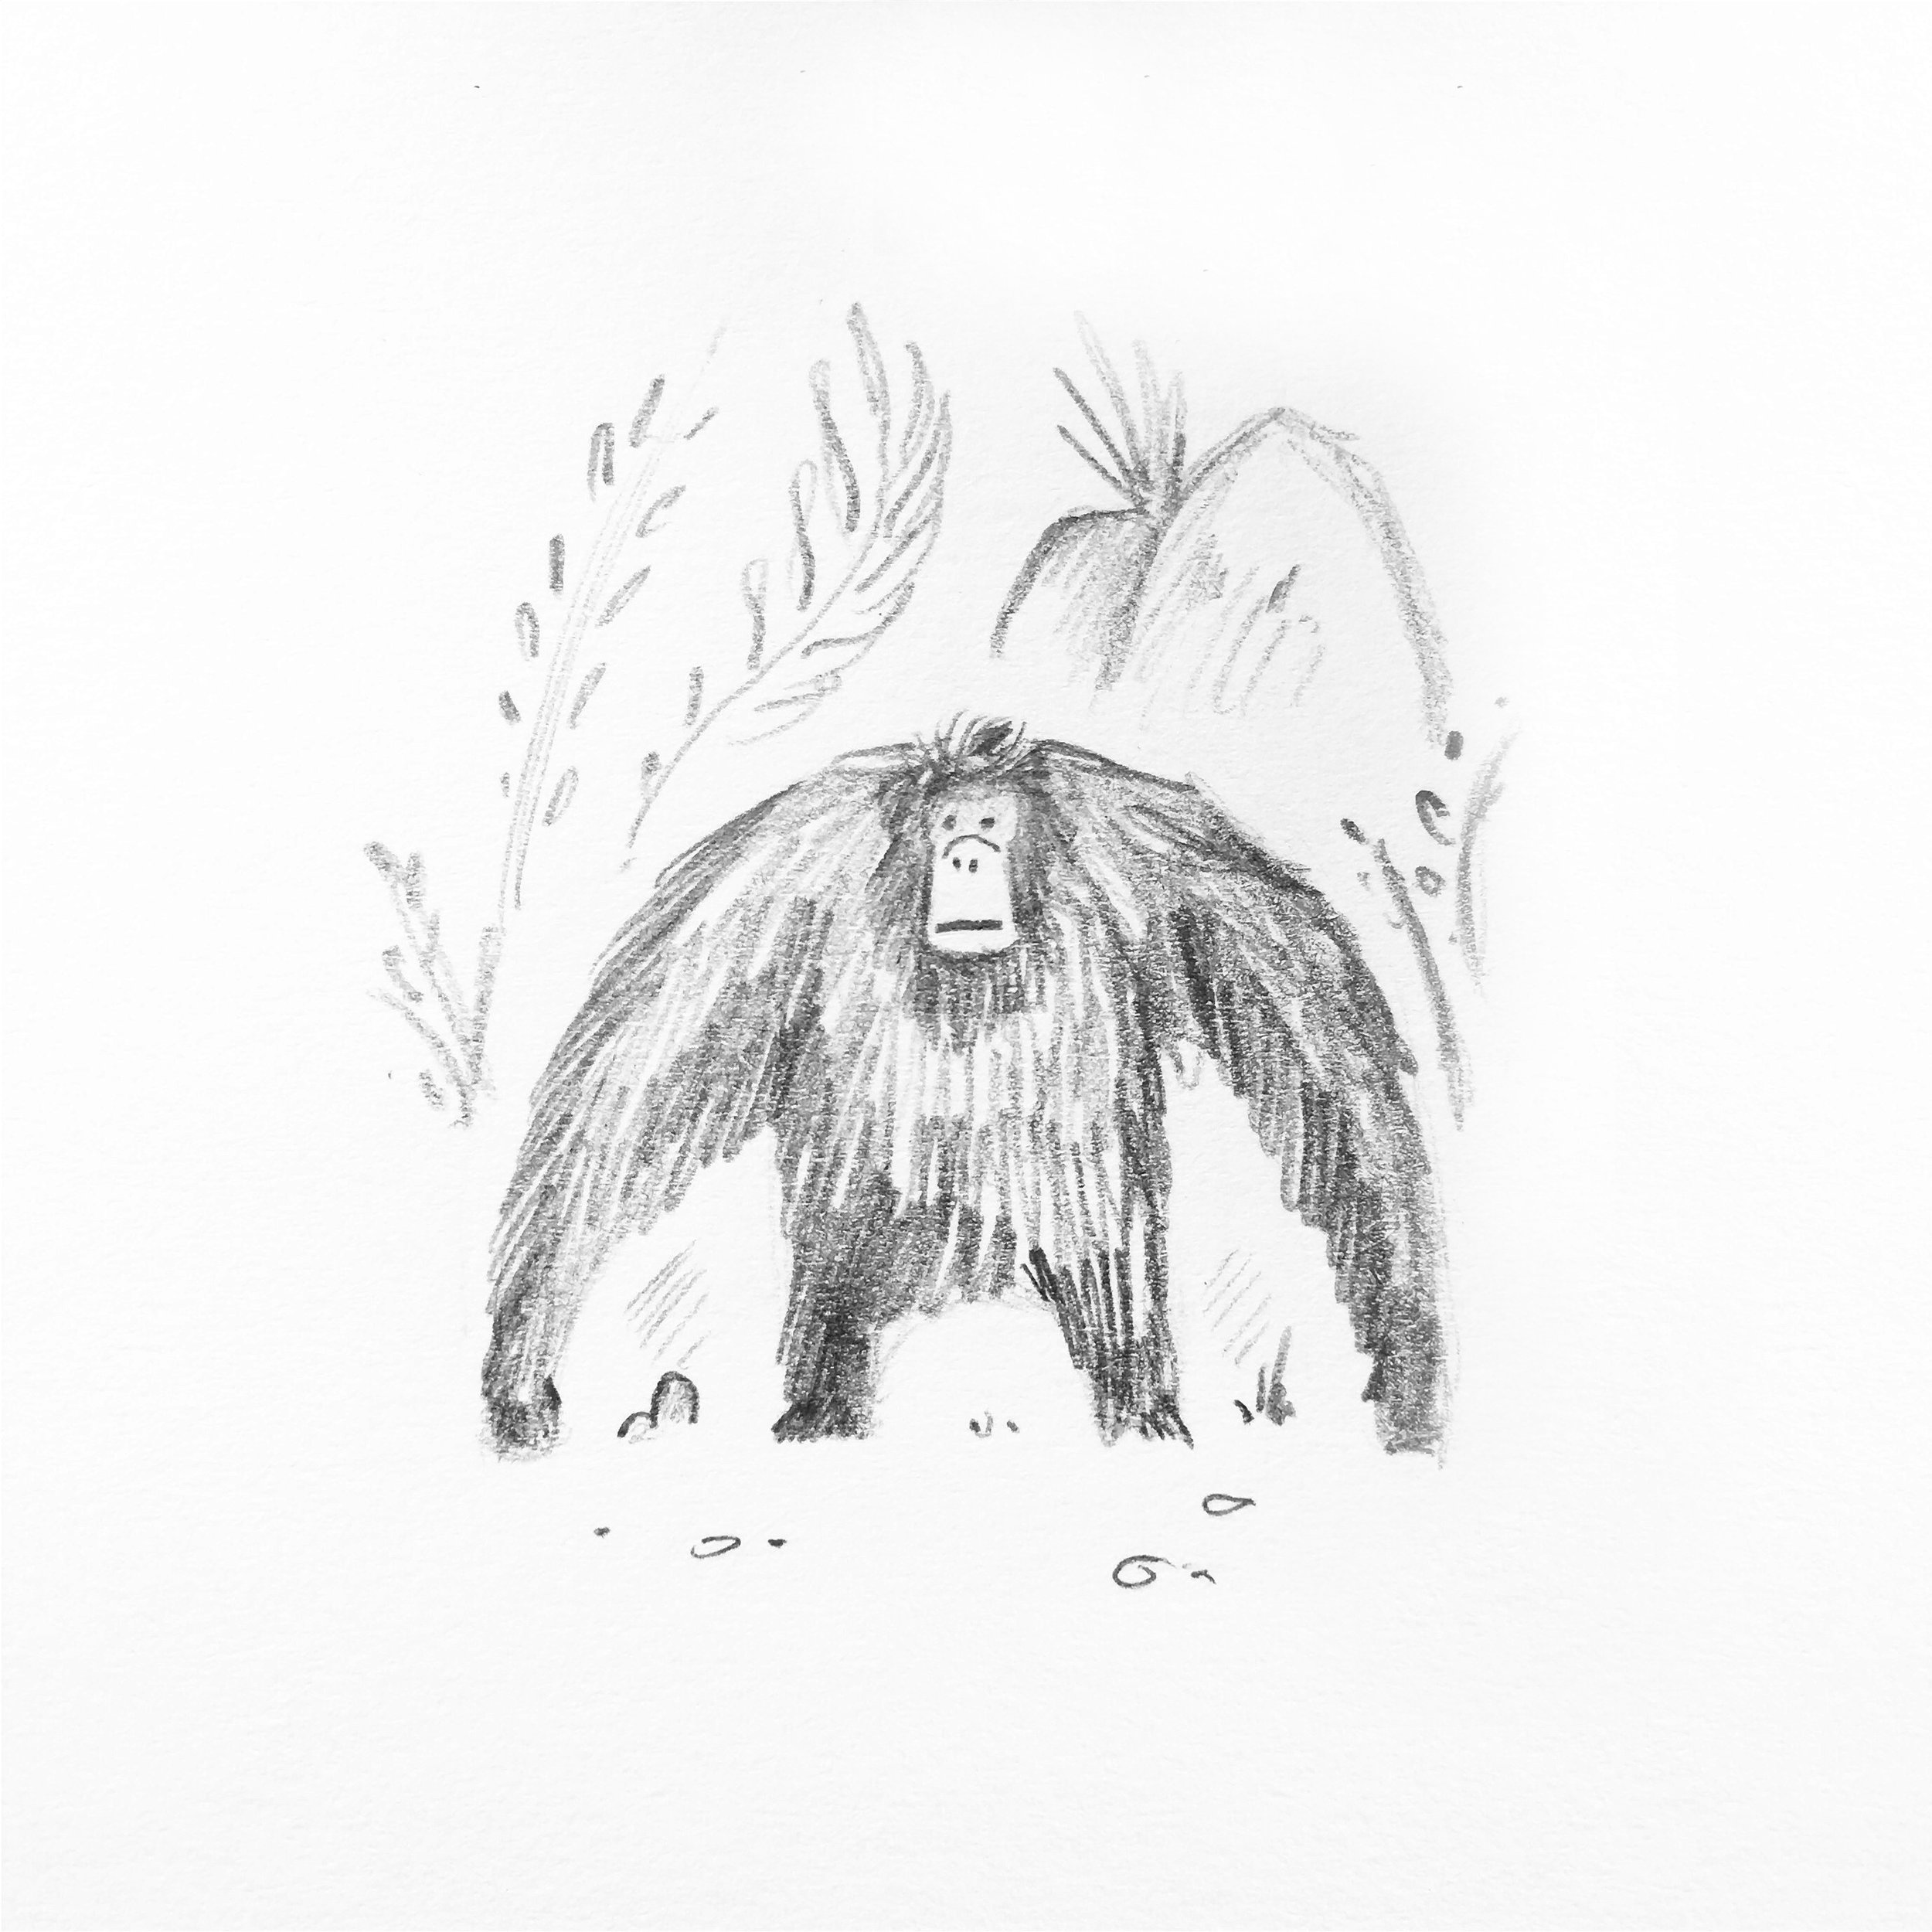 'Orangutan' © Jonty Howley Illustration